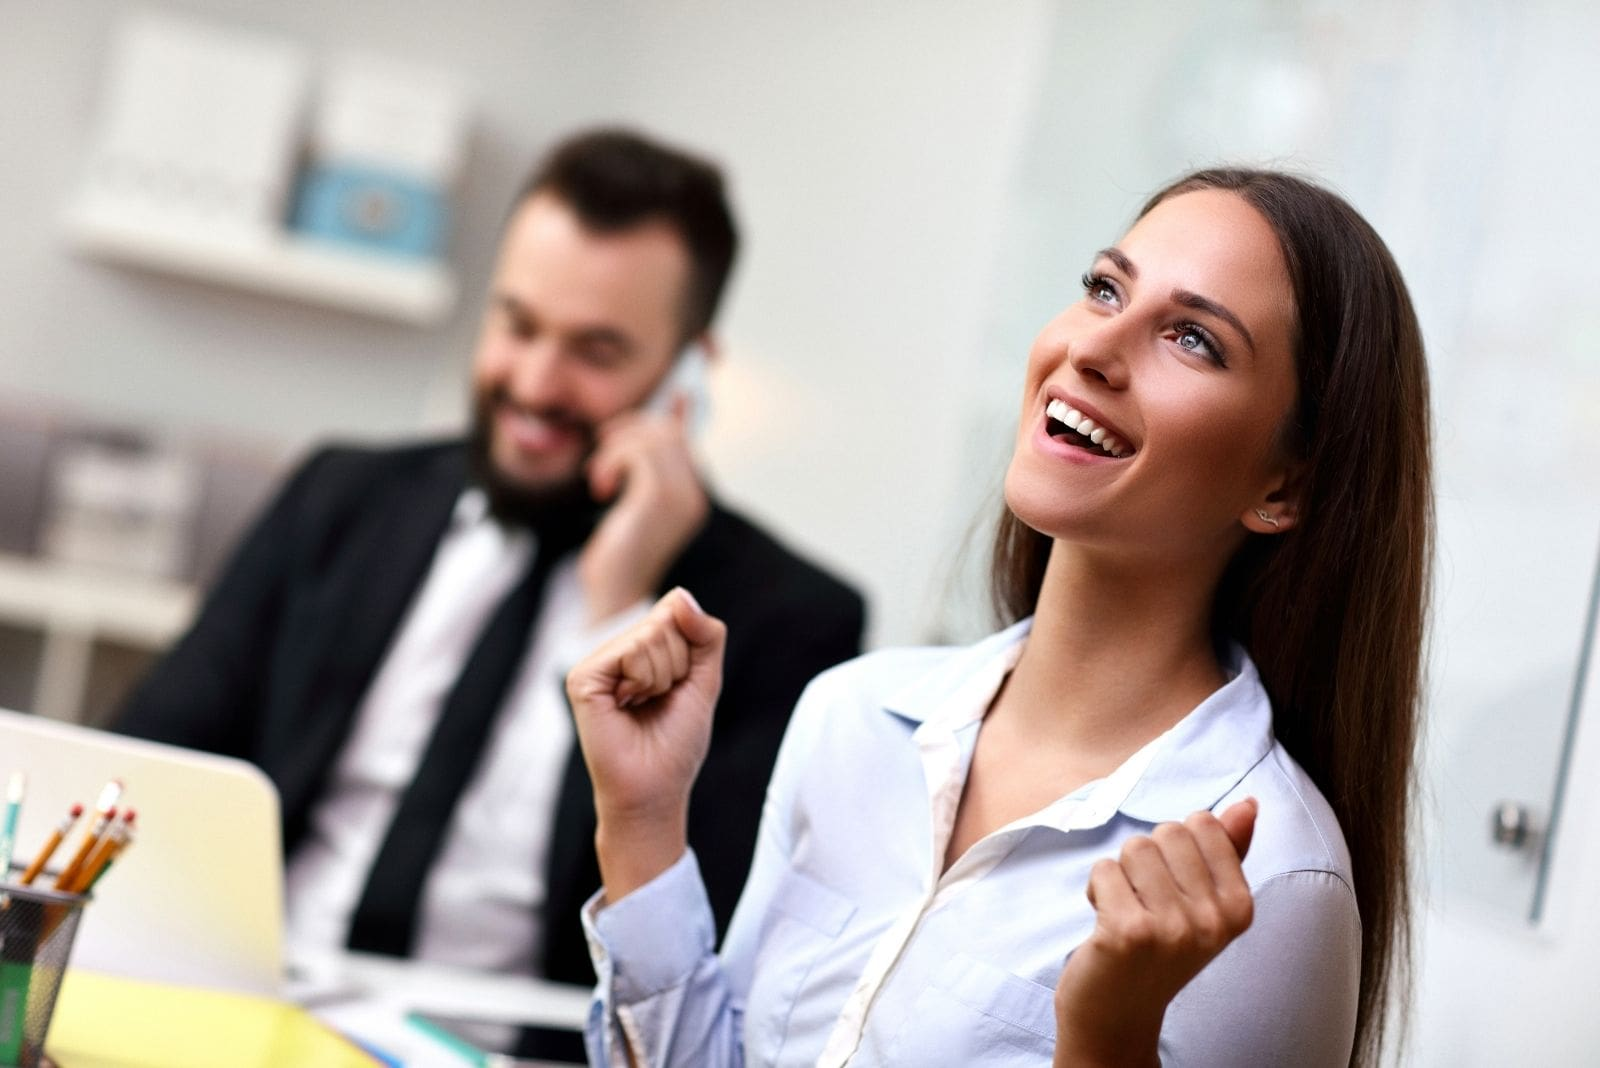 picture of a successful woman in the office and a man calling on the phone at the back